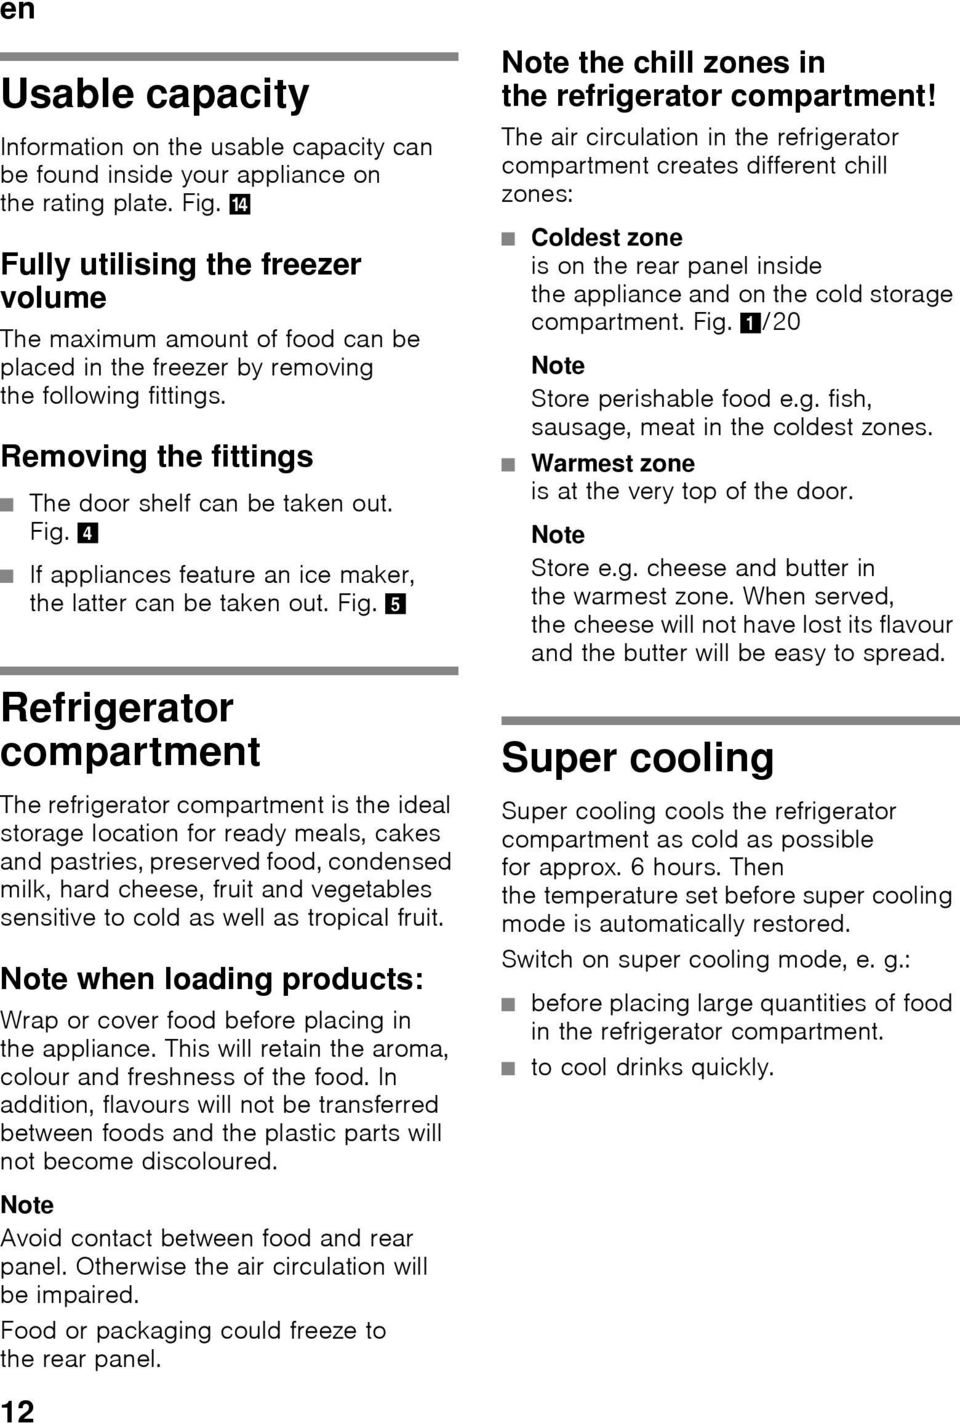 4 If appliances feature an ice maker, the latter can be taken out. Fig.